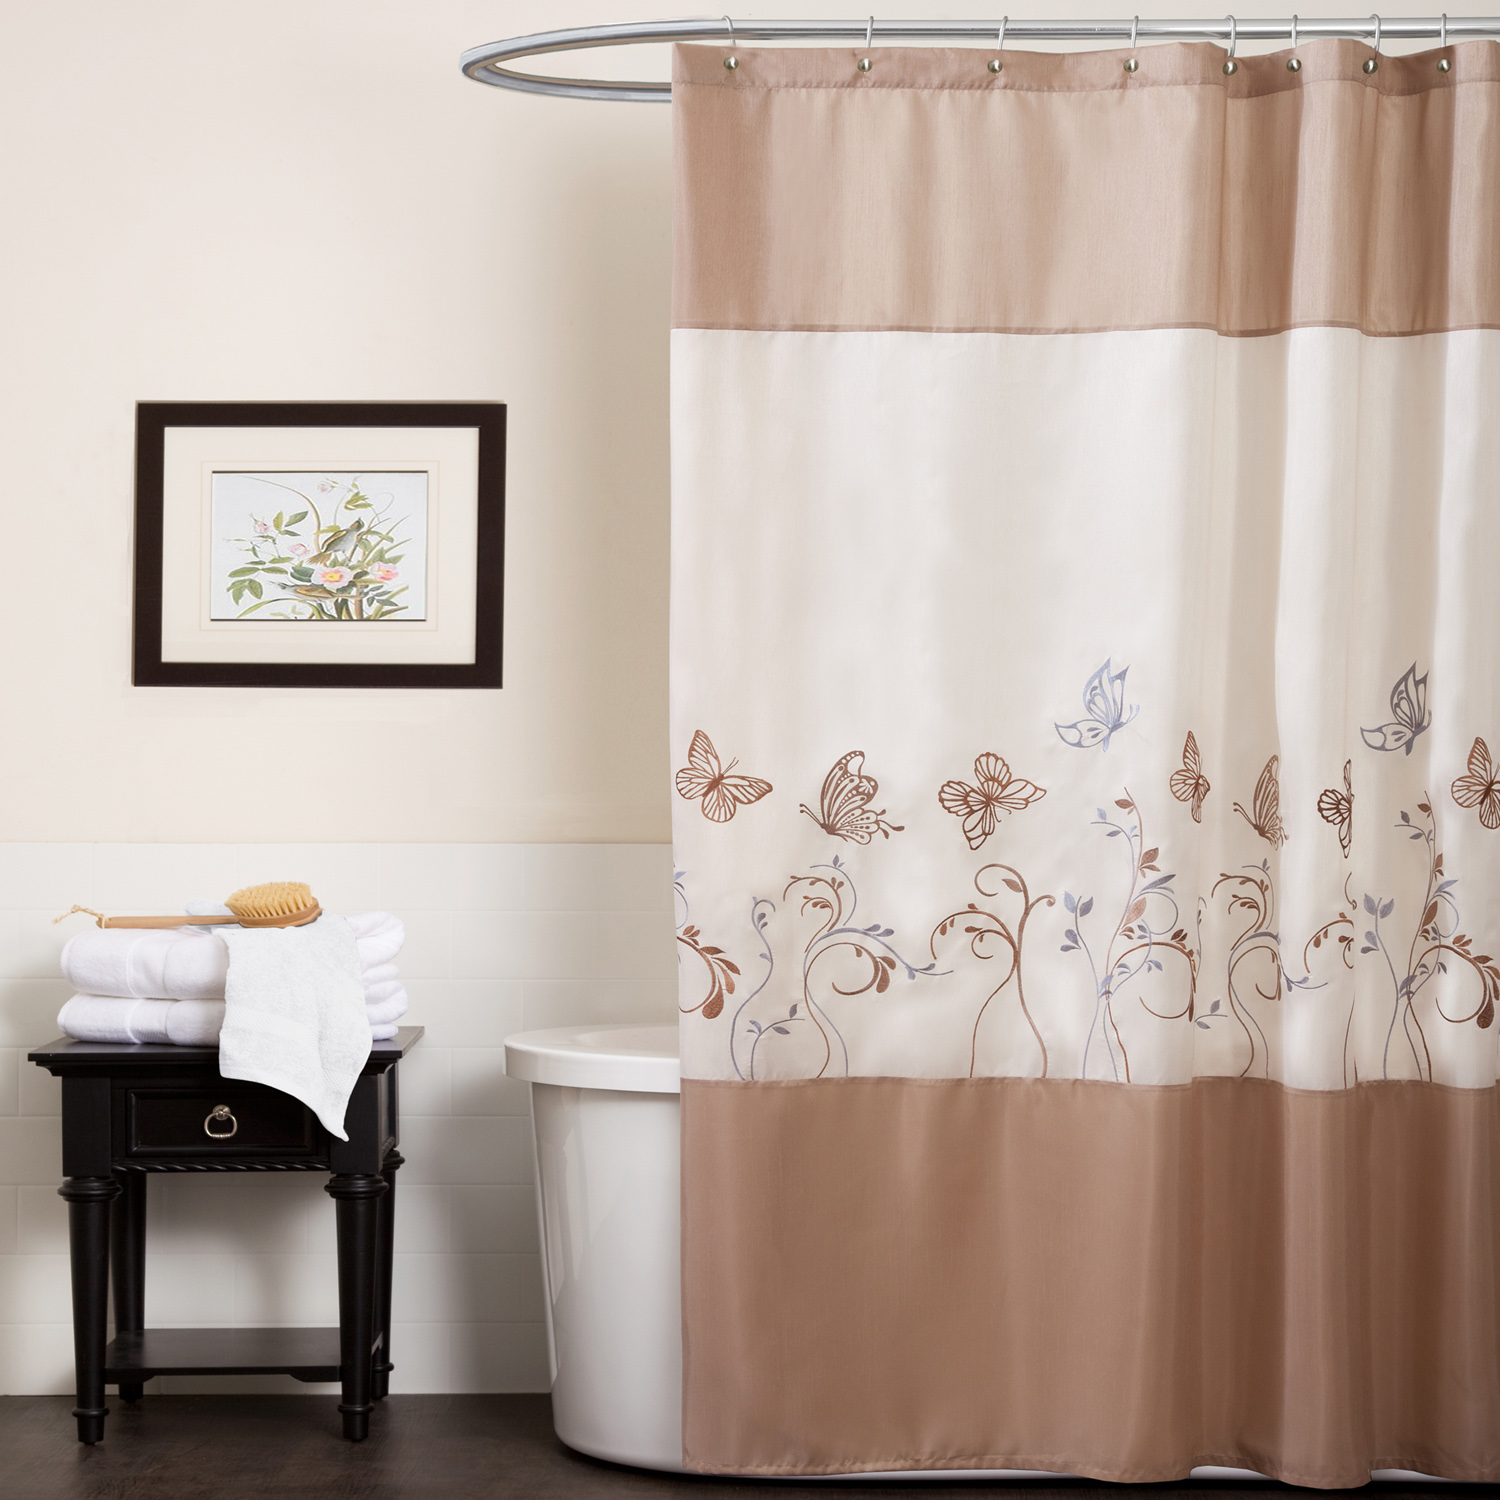 Curtains for the bathroom - Photo Gallery Of The Colorful Bathroom Shower Curtains